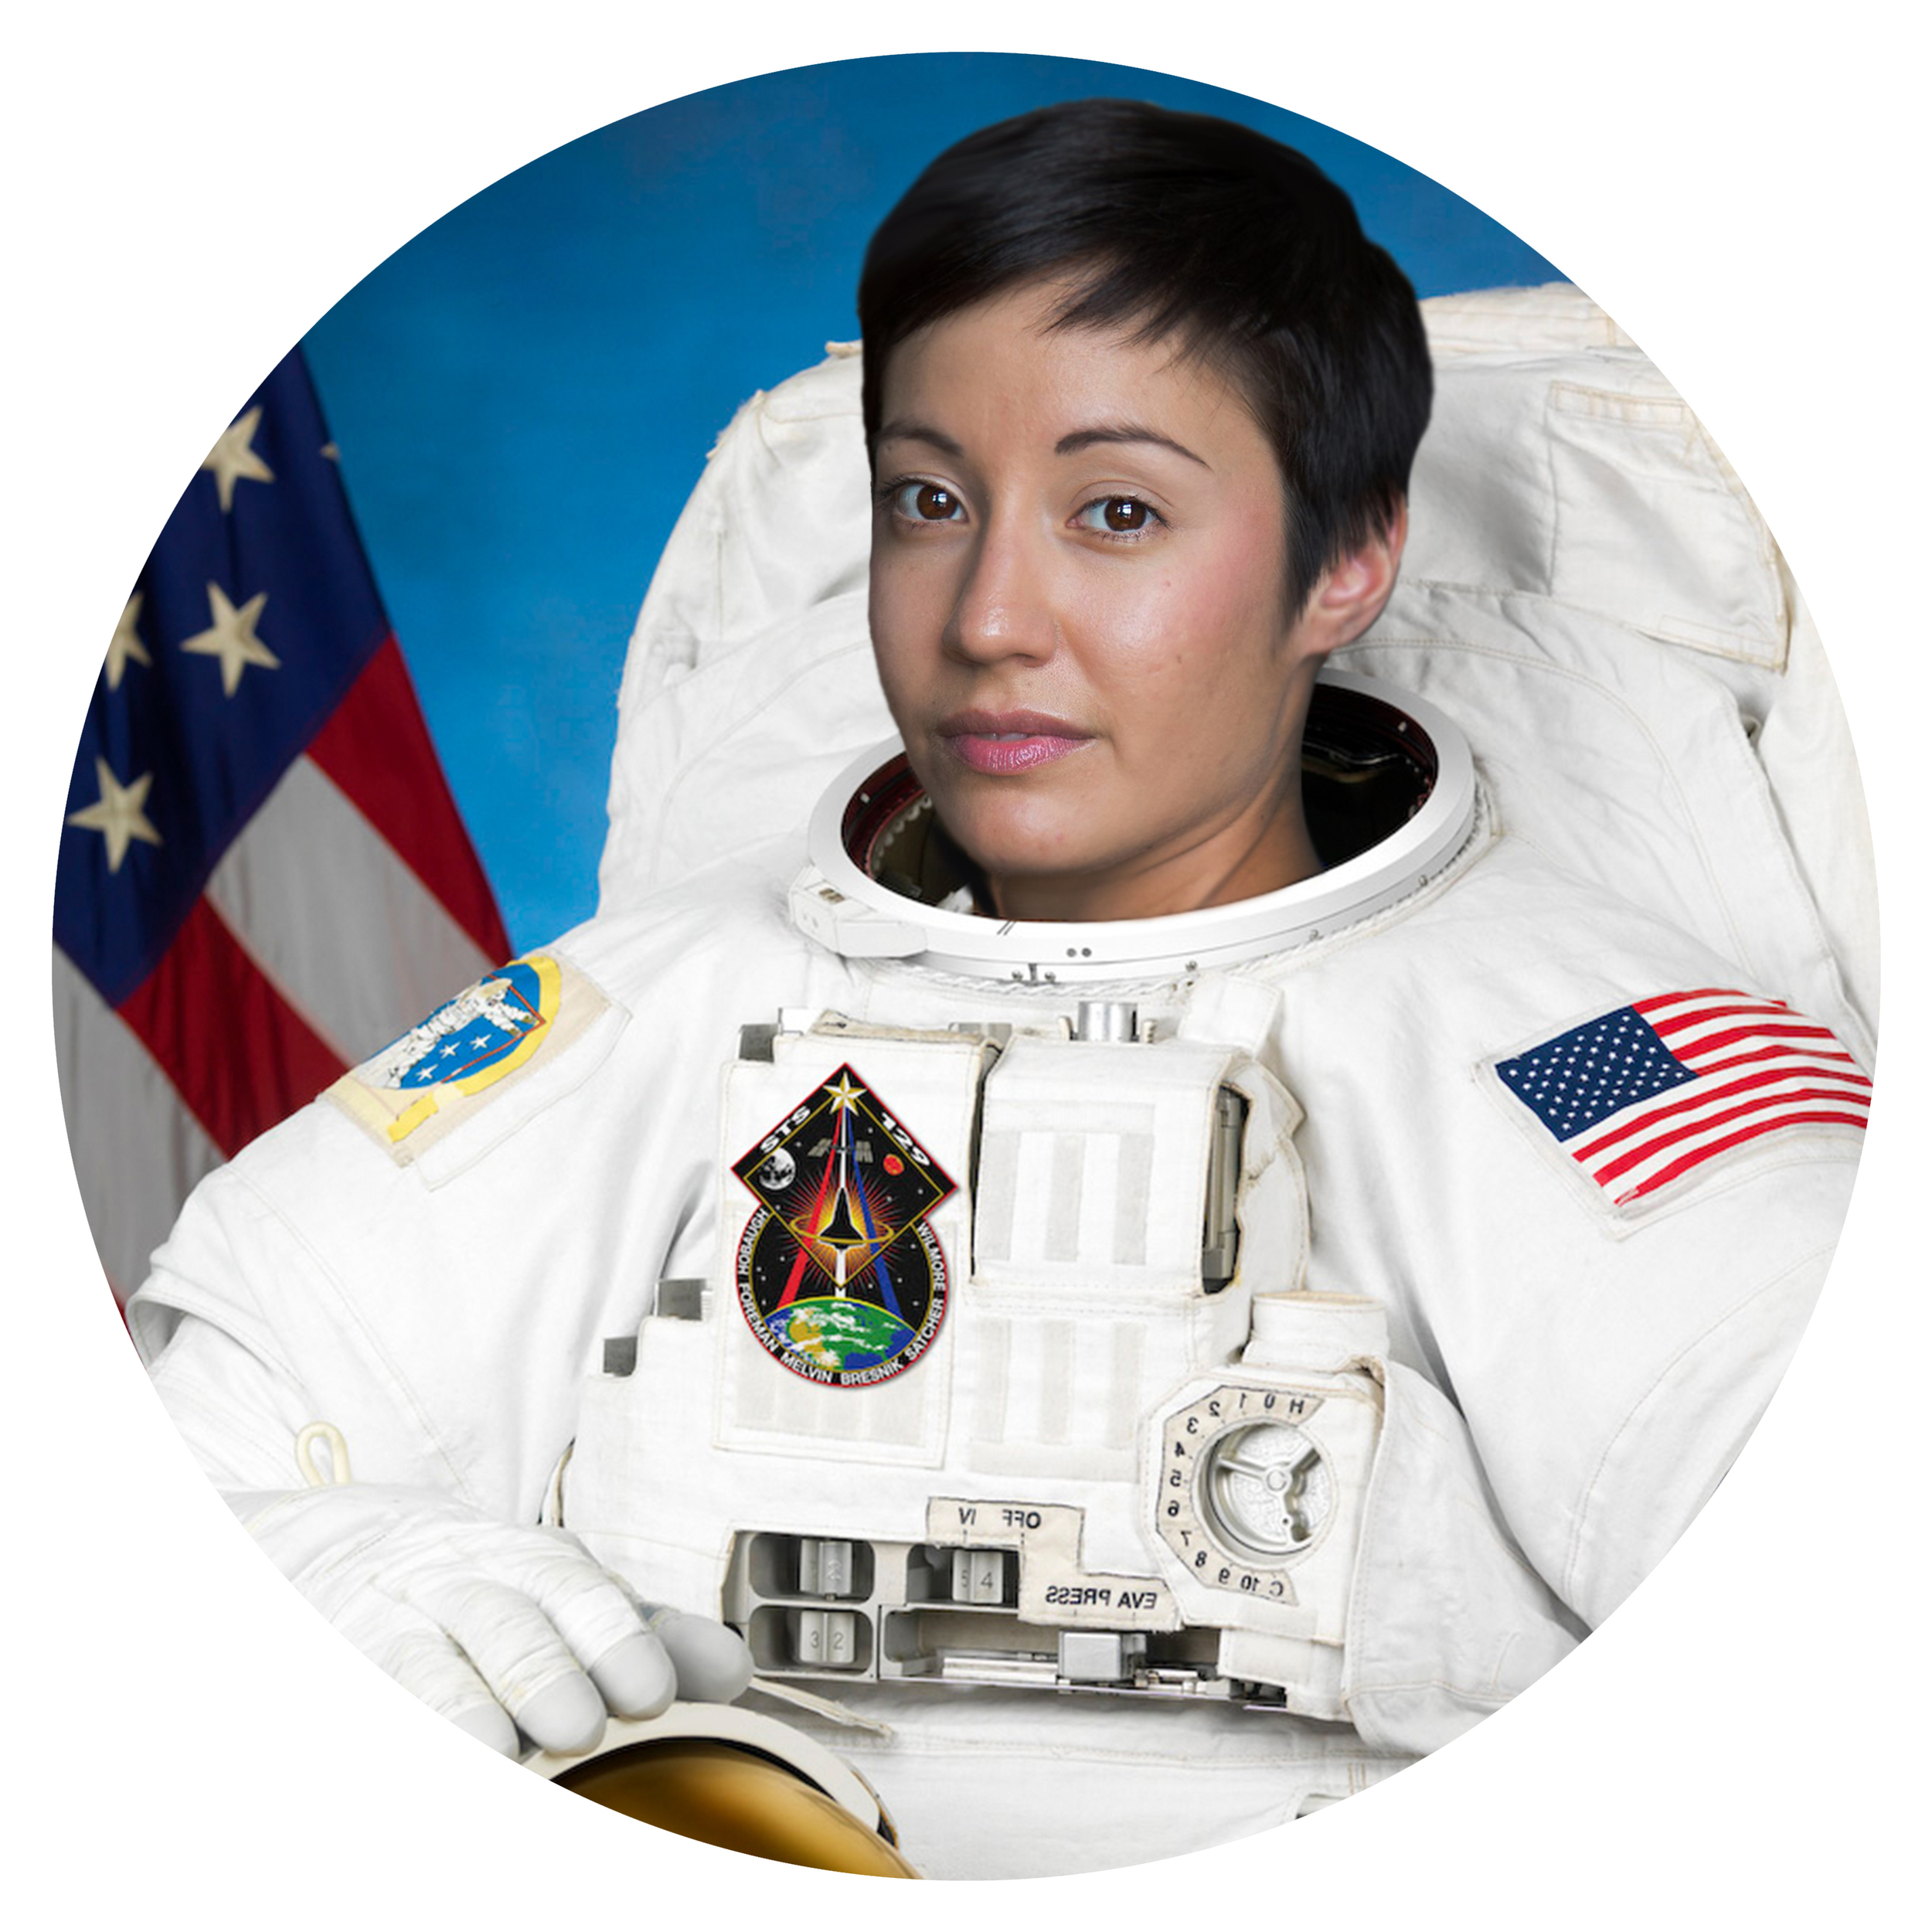 Adele Rylands joined our team as Eden, an astronaut more comfortable in Zero G than on Earth. Adele is a stunt actor, fight director and actress based in New York. Her experience and energy brought the quirks of Eden to life. -